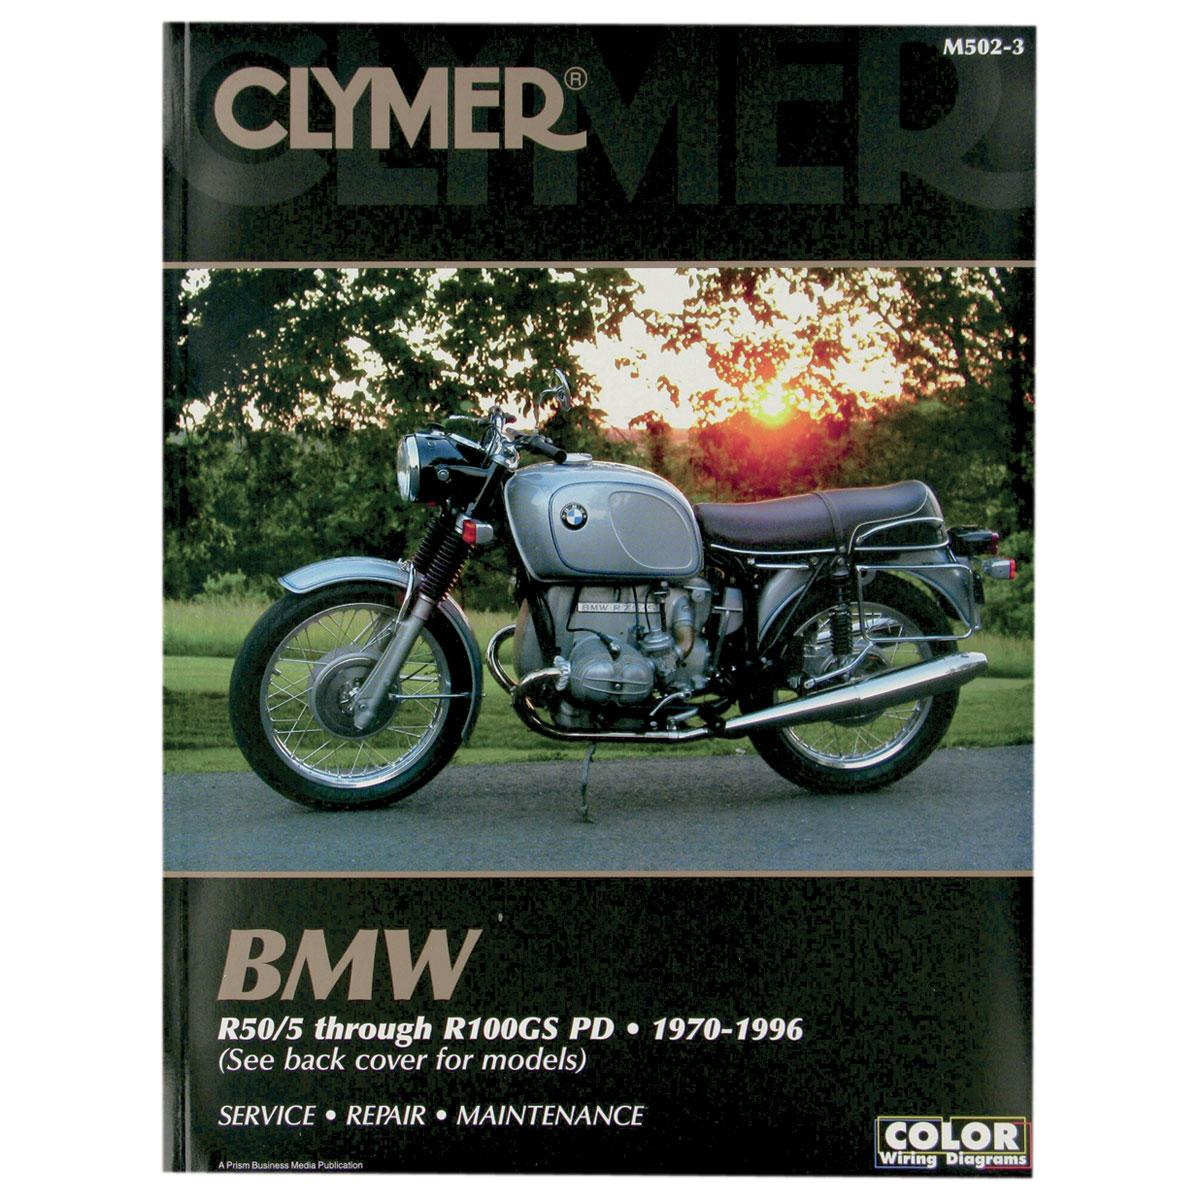 BMW R2v Airhead Boxer Clymer workshop manual